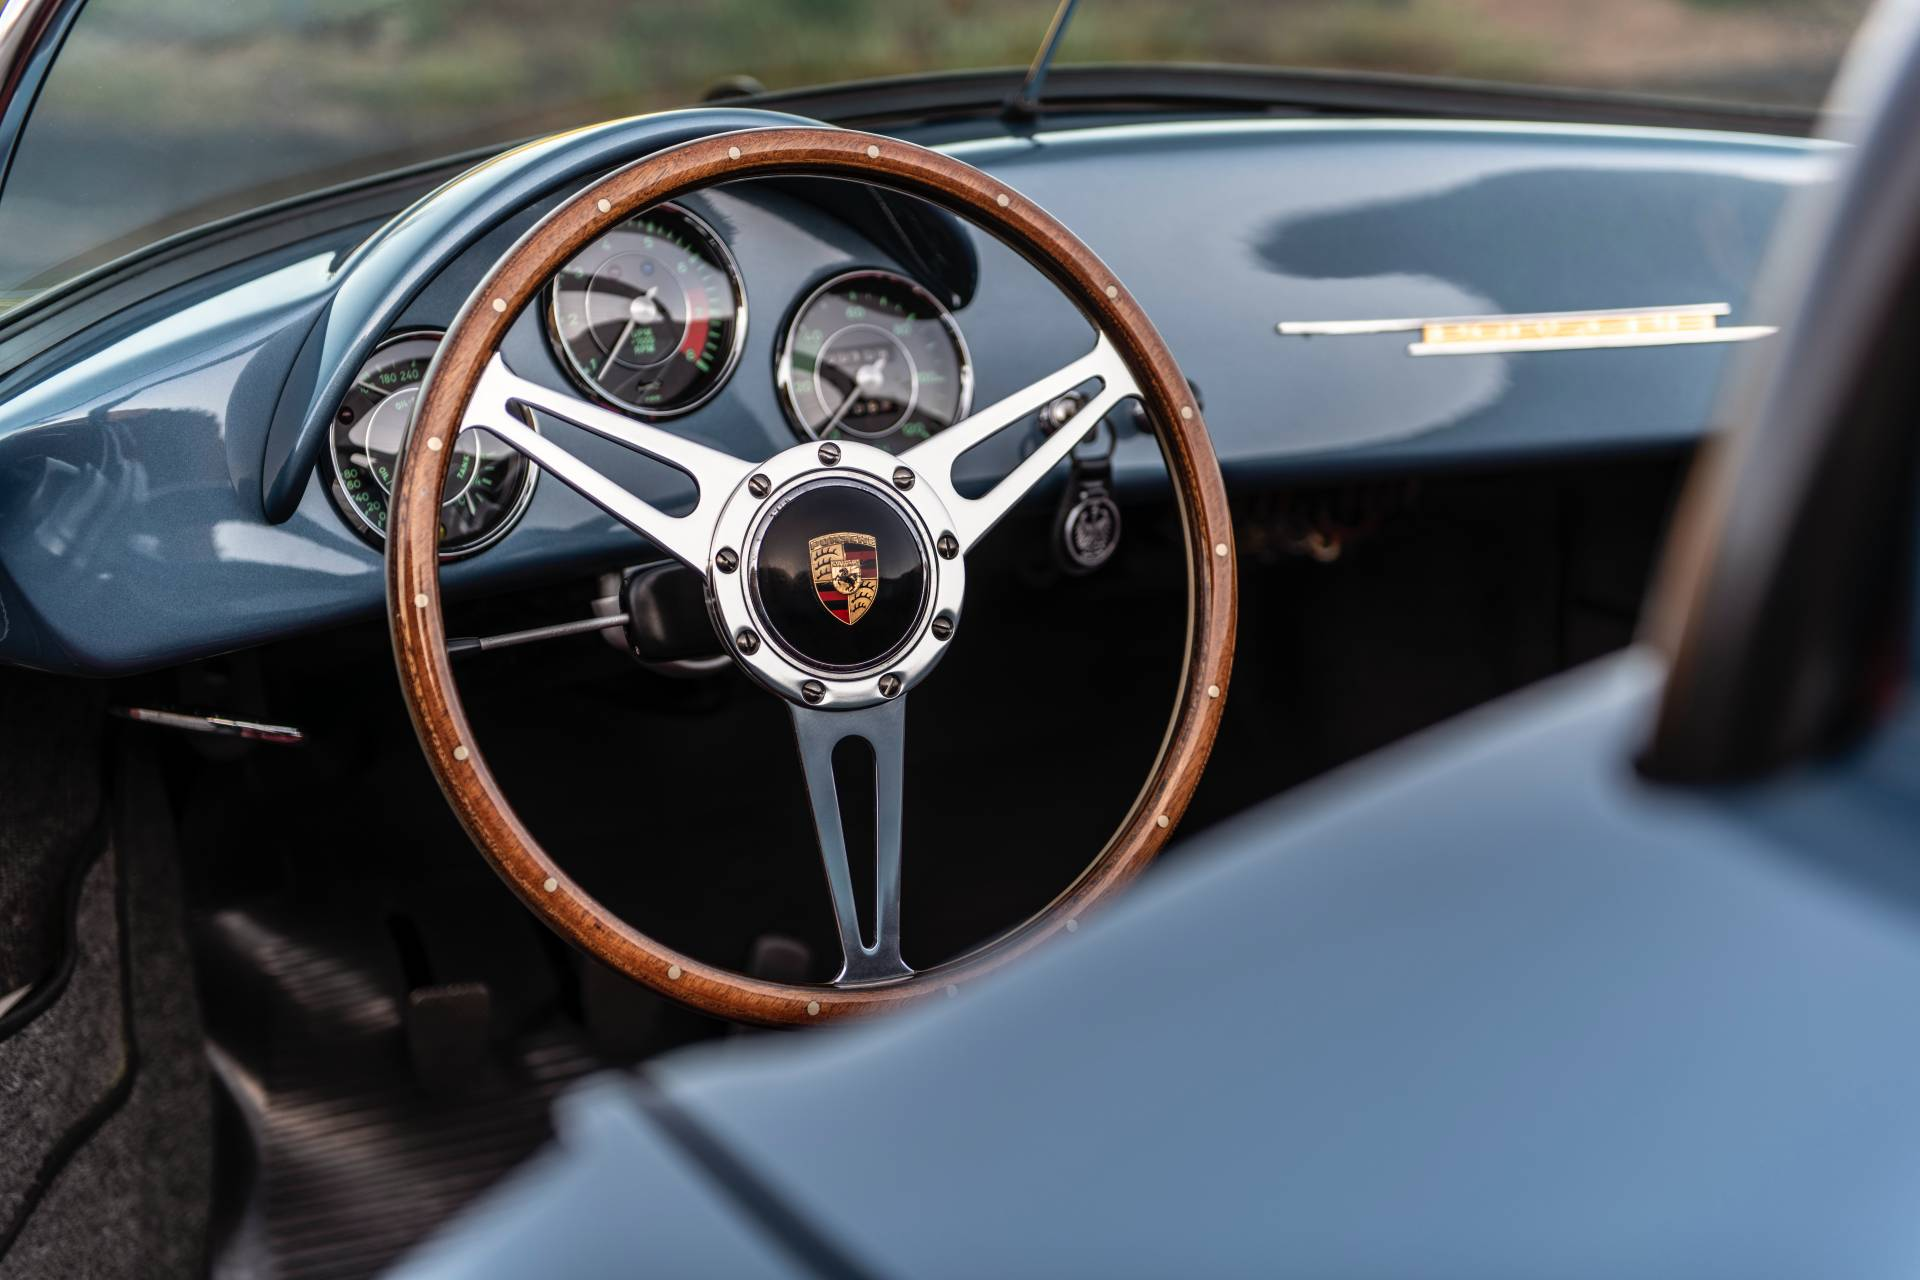 Porsche-356-Speedster-1959-Aquamarine-Transitional-By-Emory-Motorsport-31